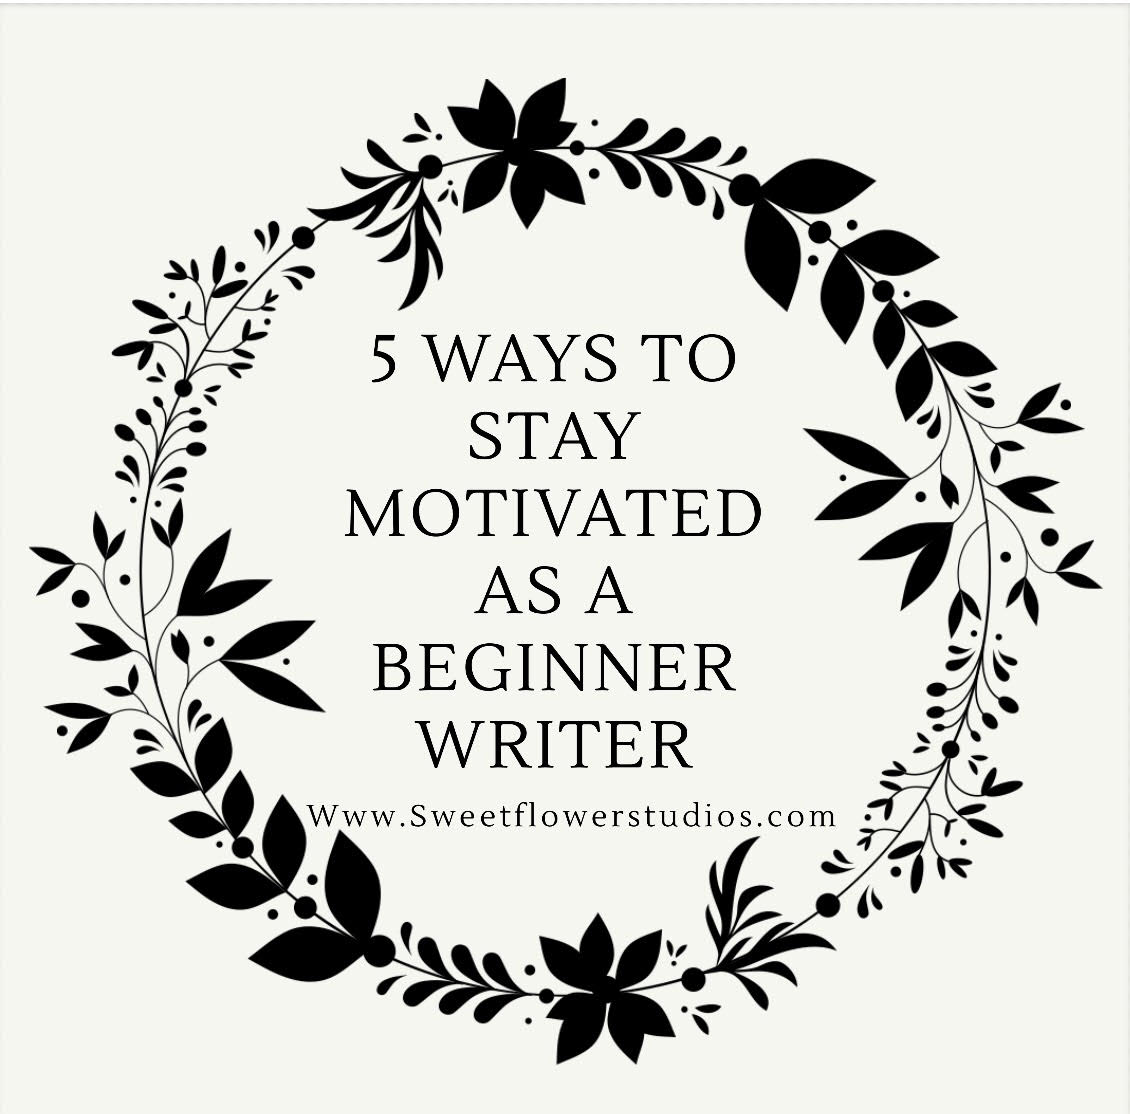 5 Way To Stay Motivated As A Beginner Writer